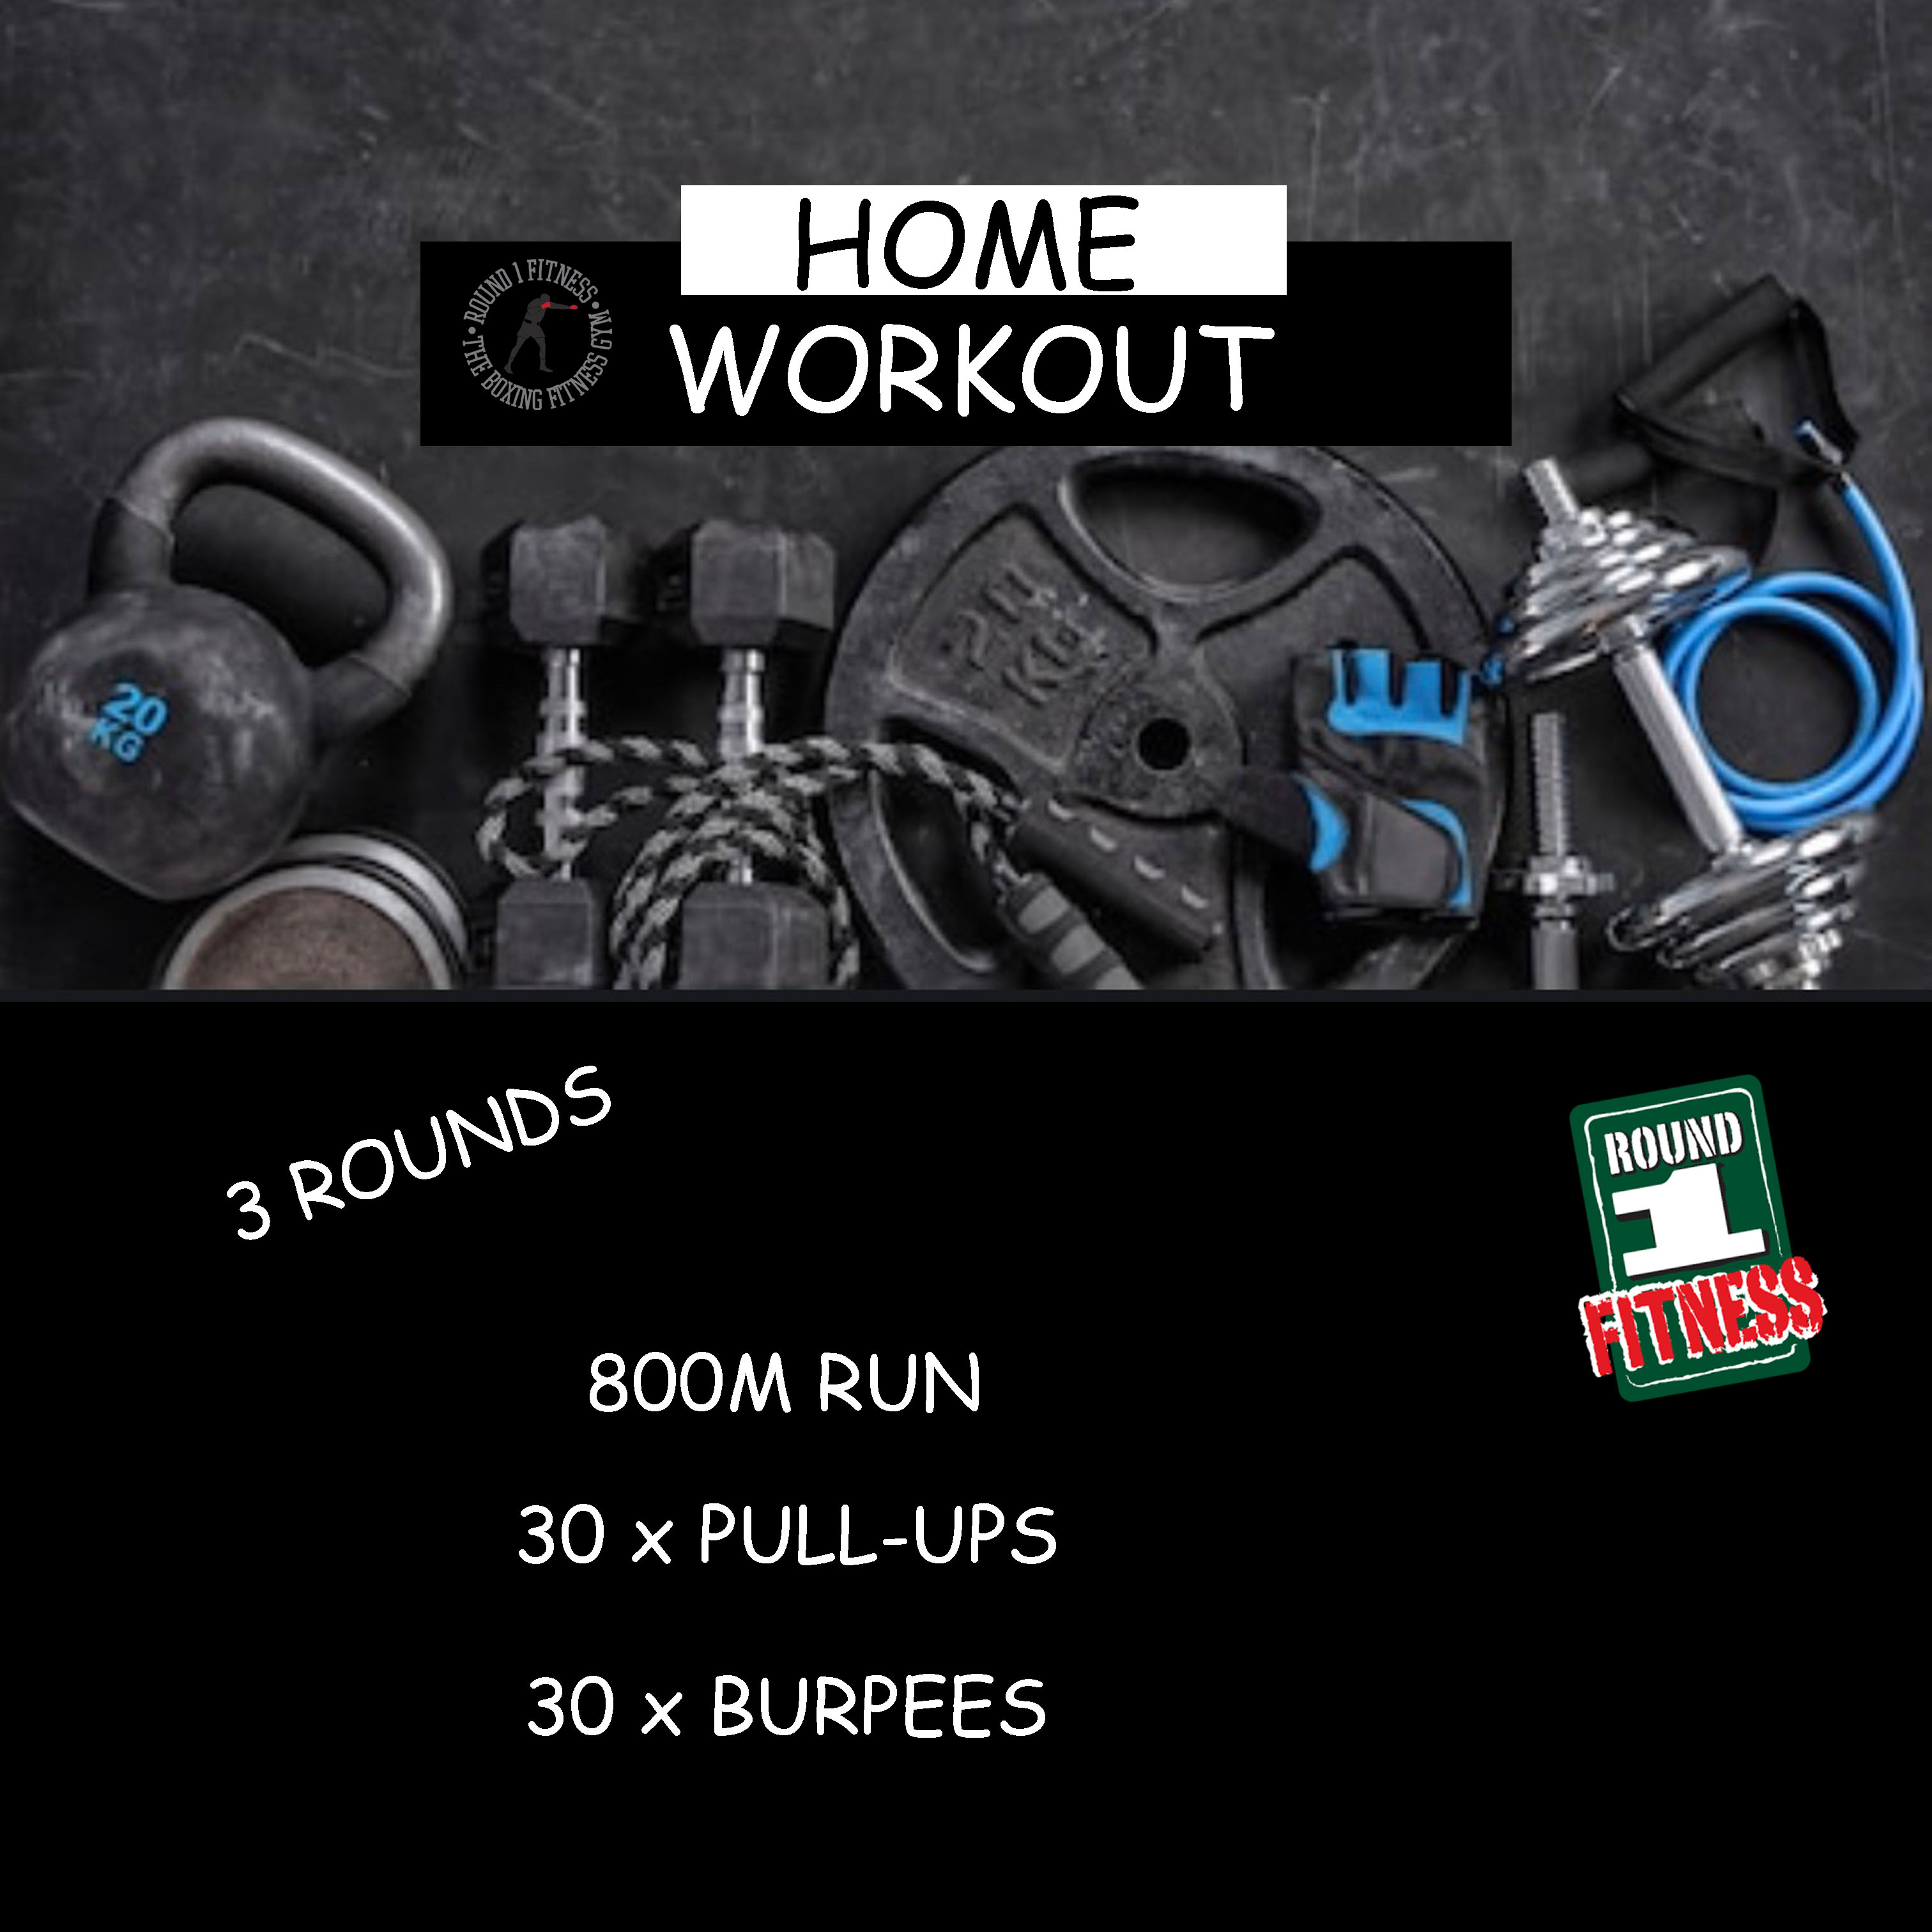 Home Workout:  Tuesday, March 31st